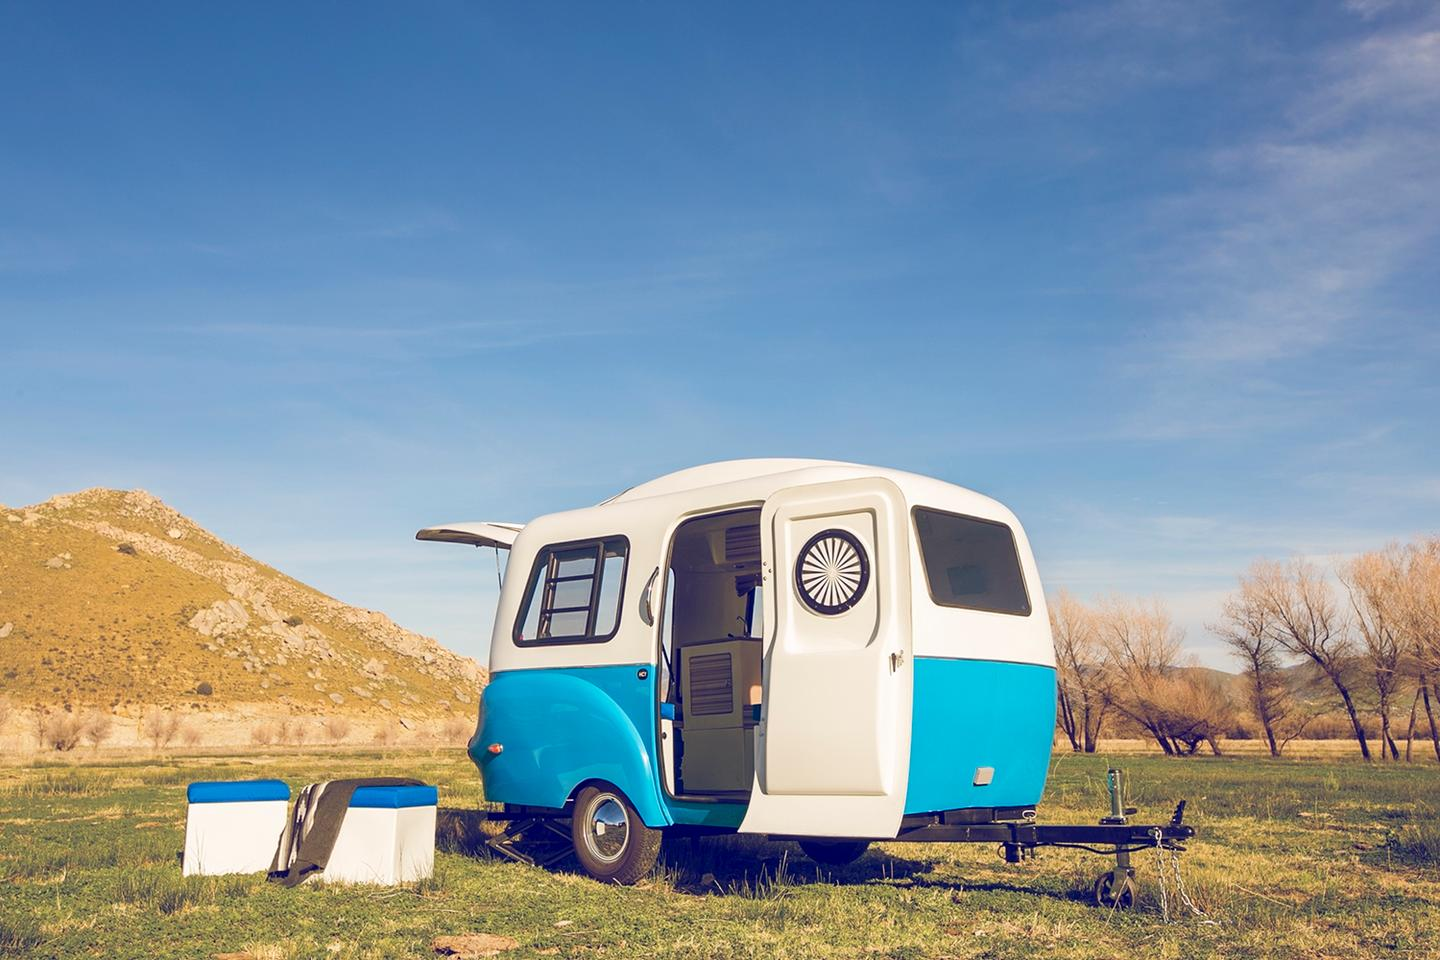 The Happier Camper HC1 travel trailer is due to go into production